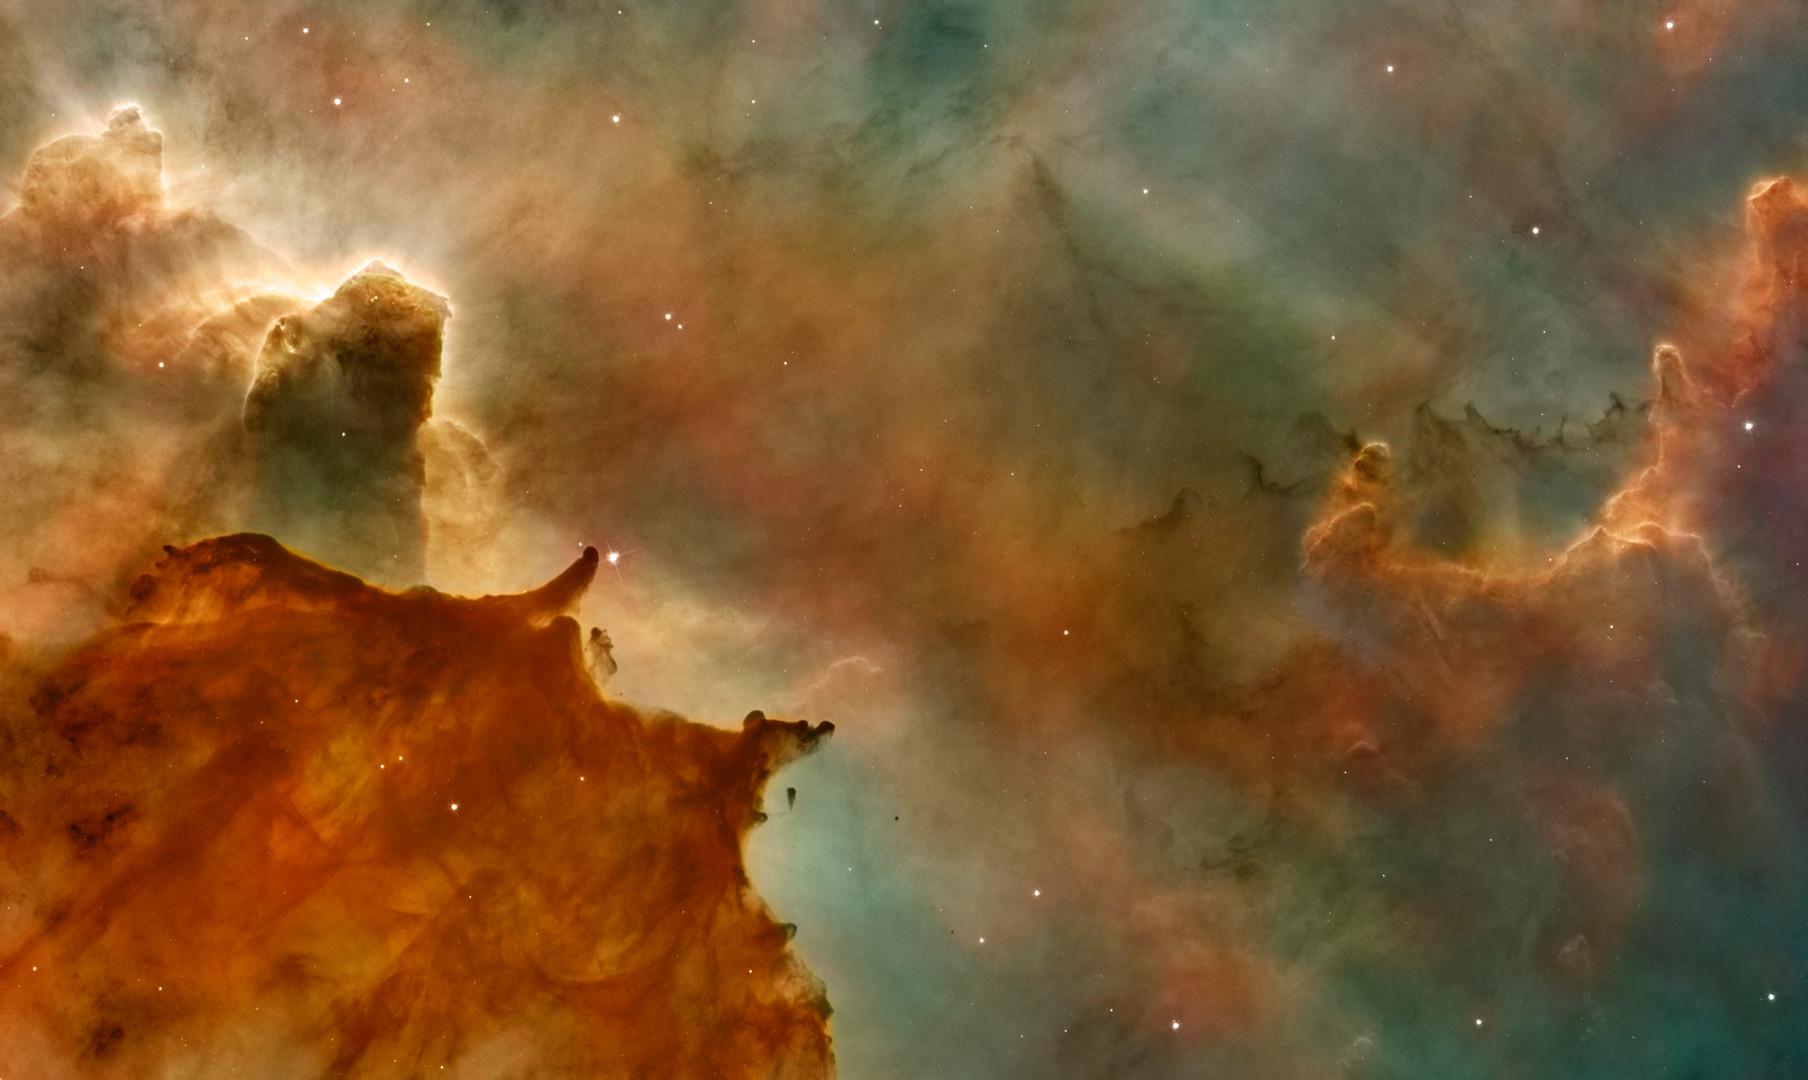 Seeing Is Not Believing: Dr. Jayanne English talks visual grammar and the real art behind astrophotography